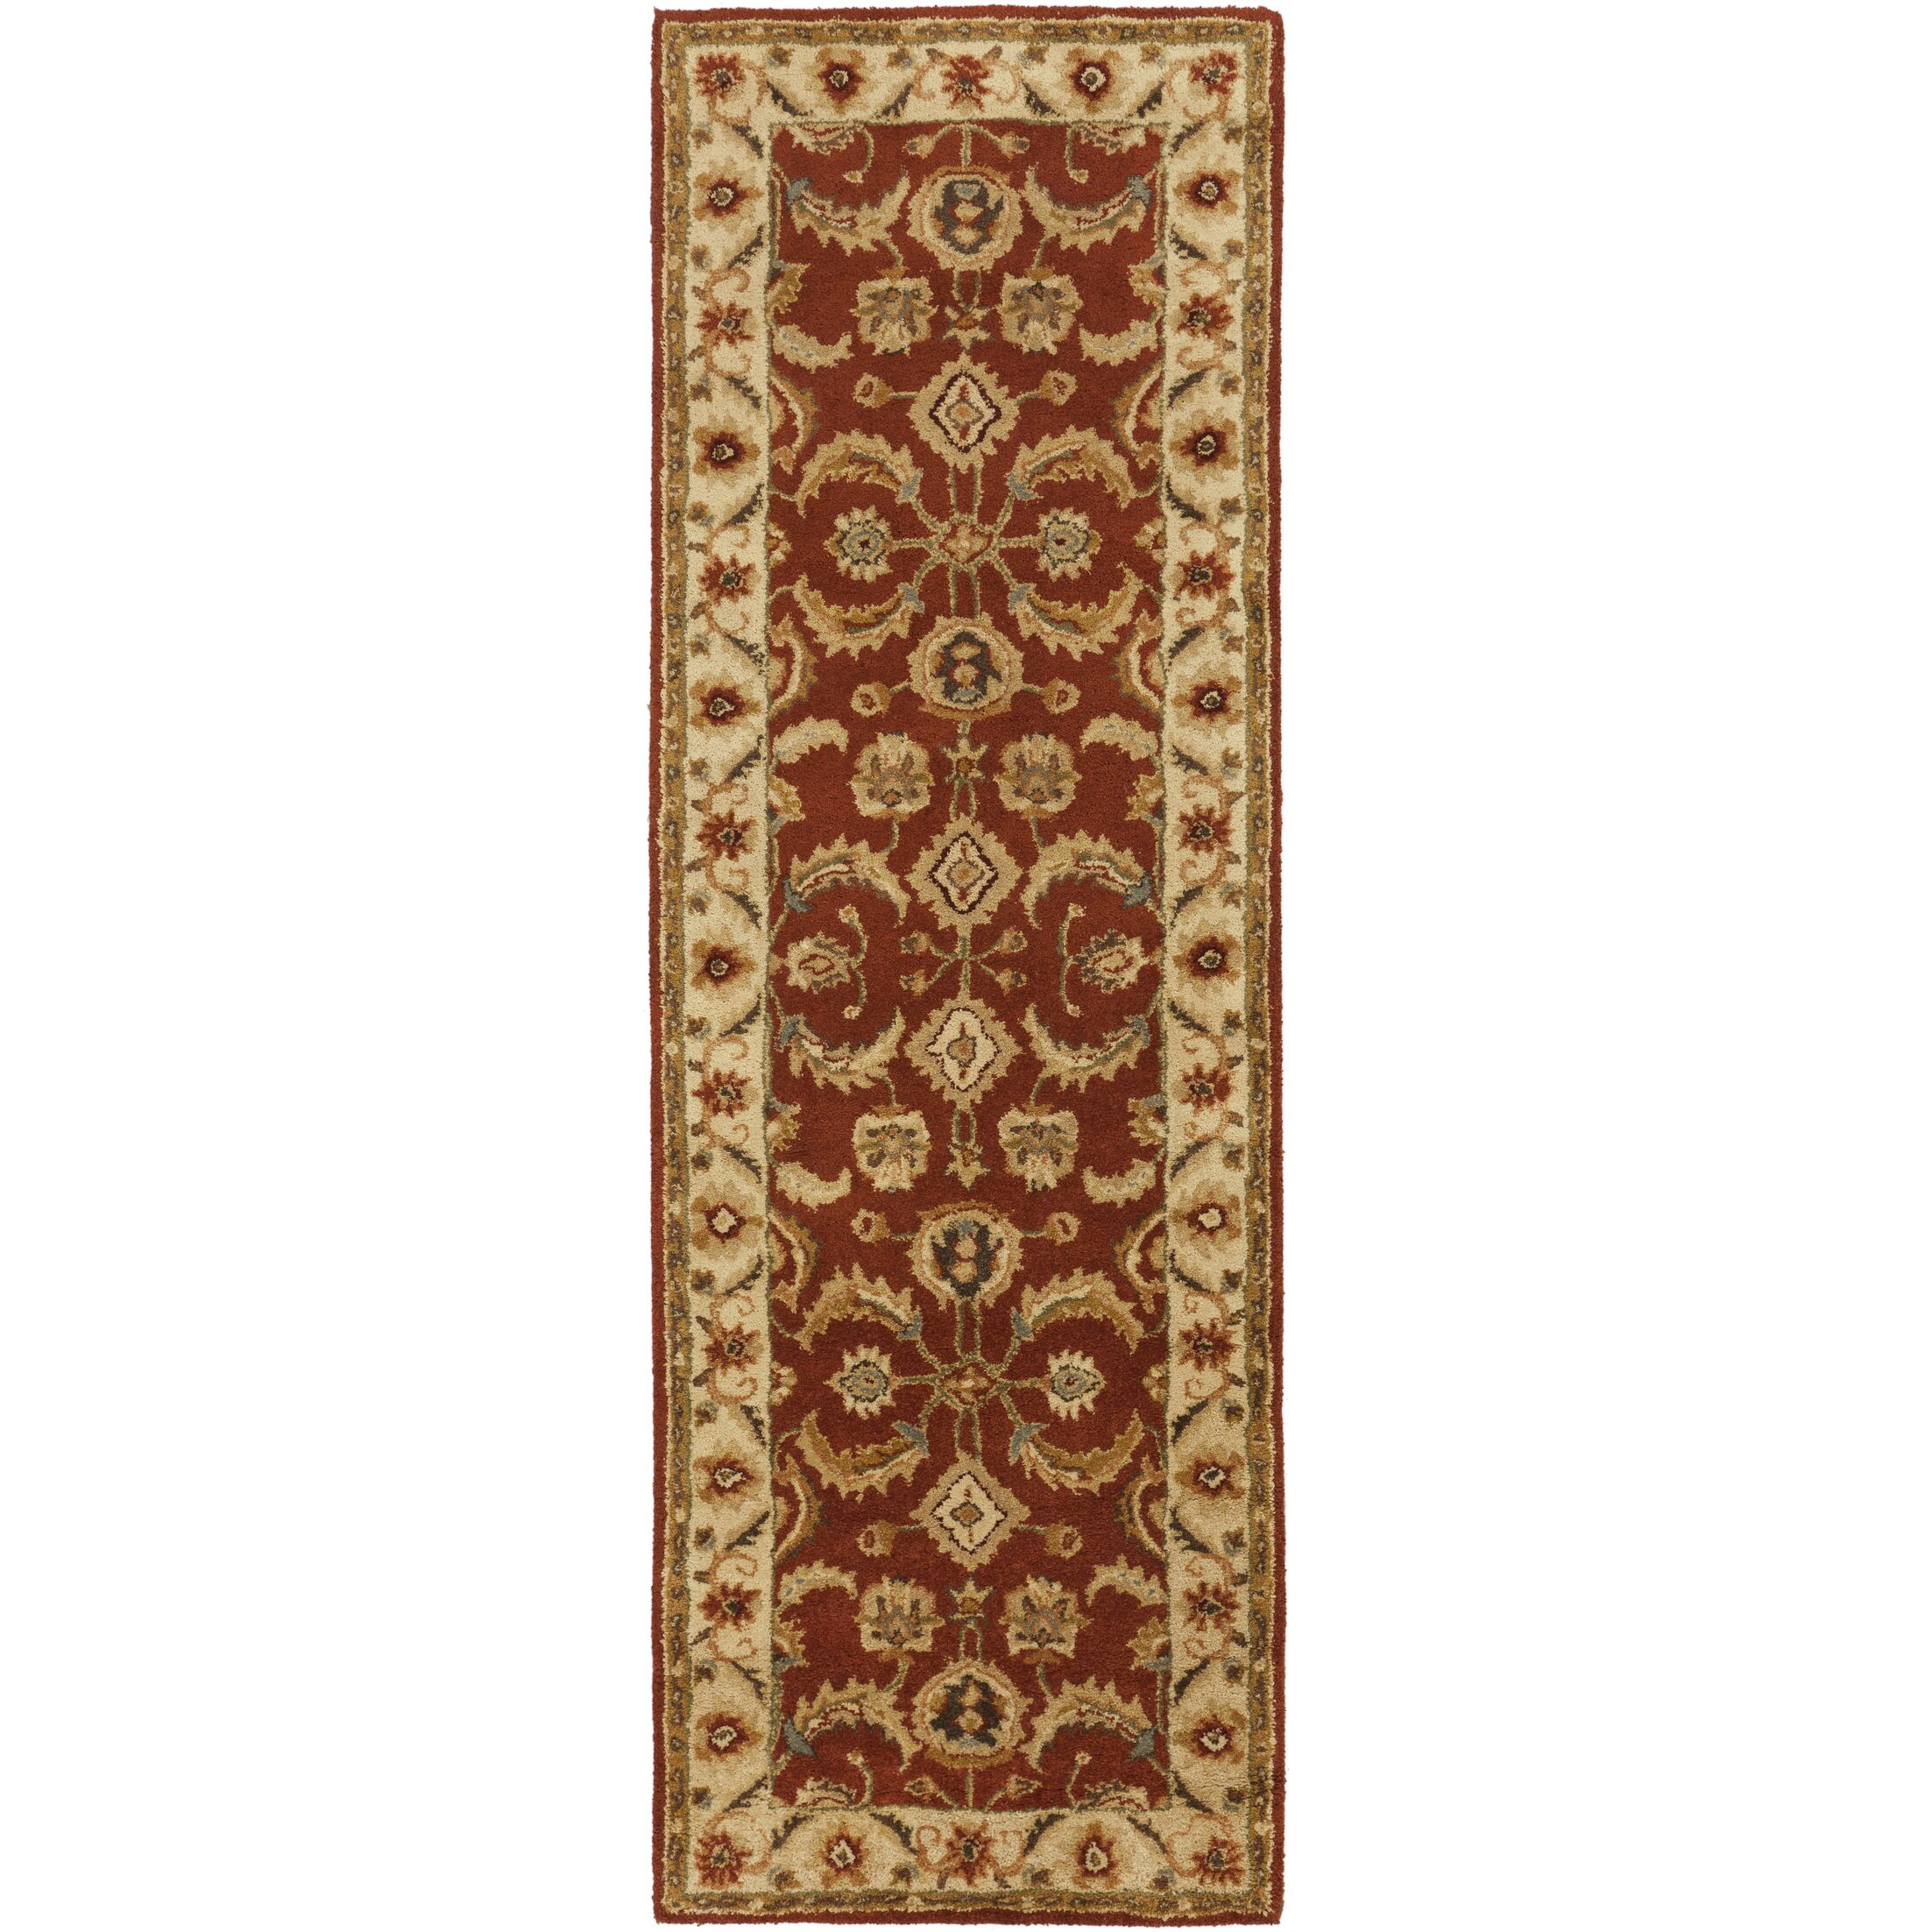 Arcadia Hand-Tufted Red Area Rug Rug Size: Runner 2'6